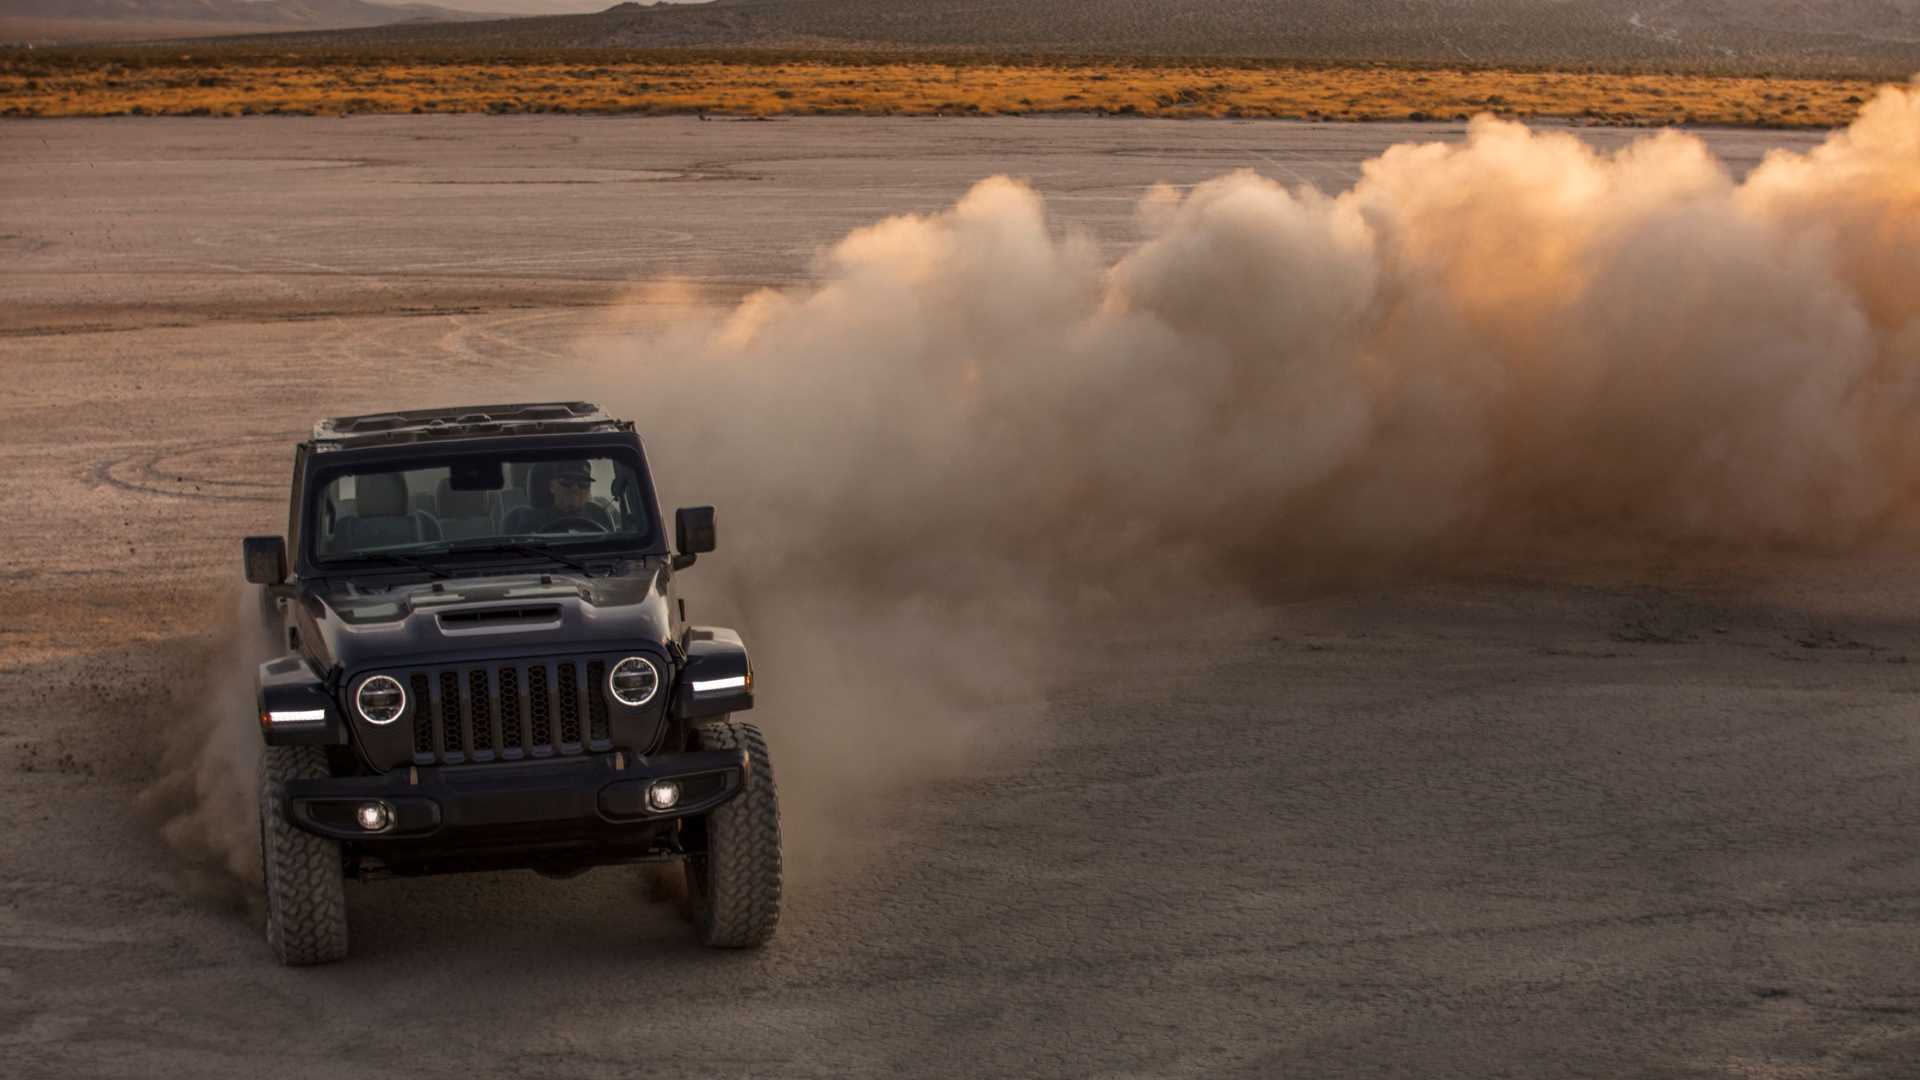 2021-jeep-wrangler-rubicon-392-front-view-16